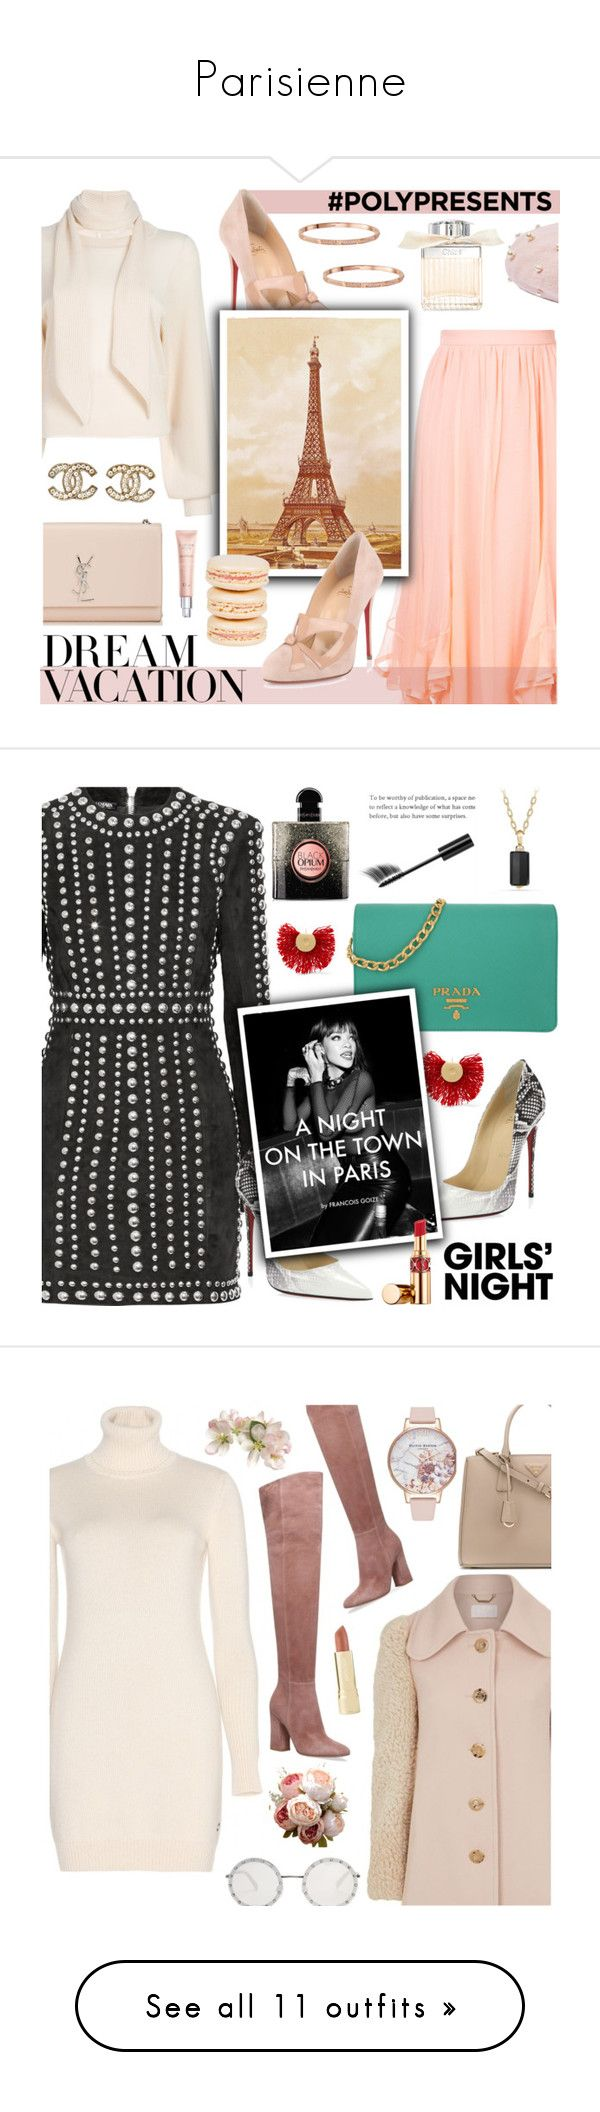 """Parisienne"" by freshprincesse ❤ liked on Polyvore featuring Chloé, Christian Louboutin, Yves Saint Laurent, Mikimoto, Topshop, Chanel, Christian Dior, Katerina Makriyianni, Prada and Balmain"